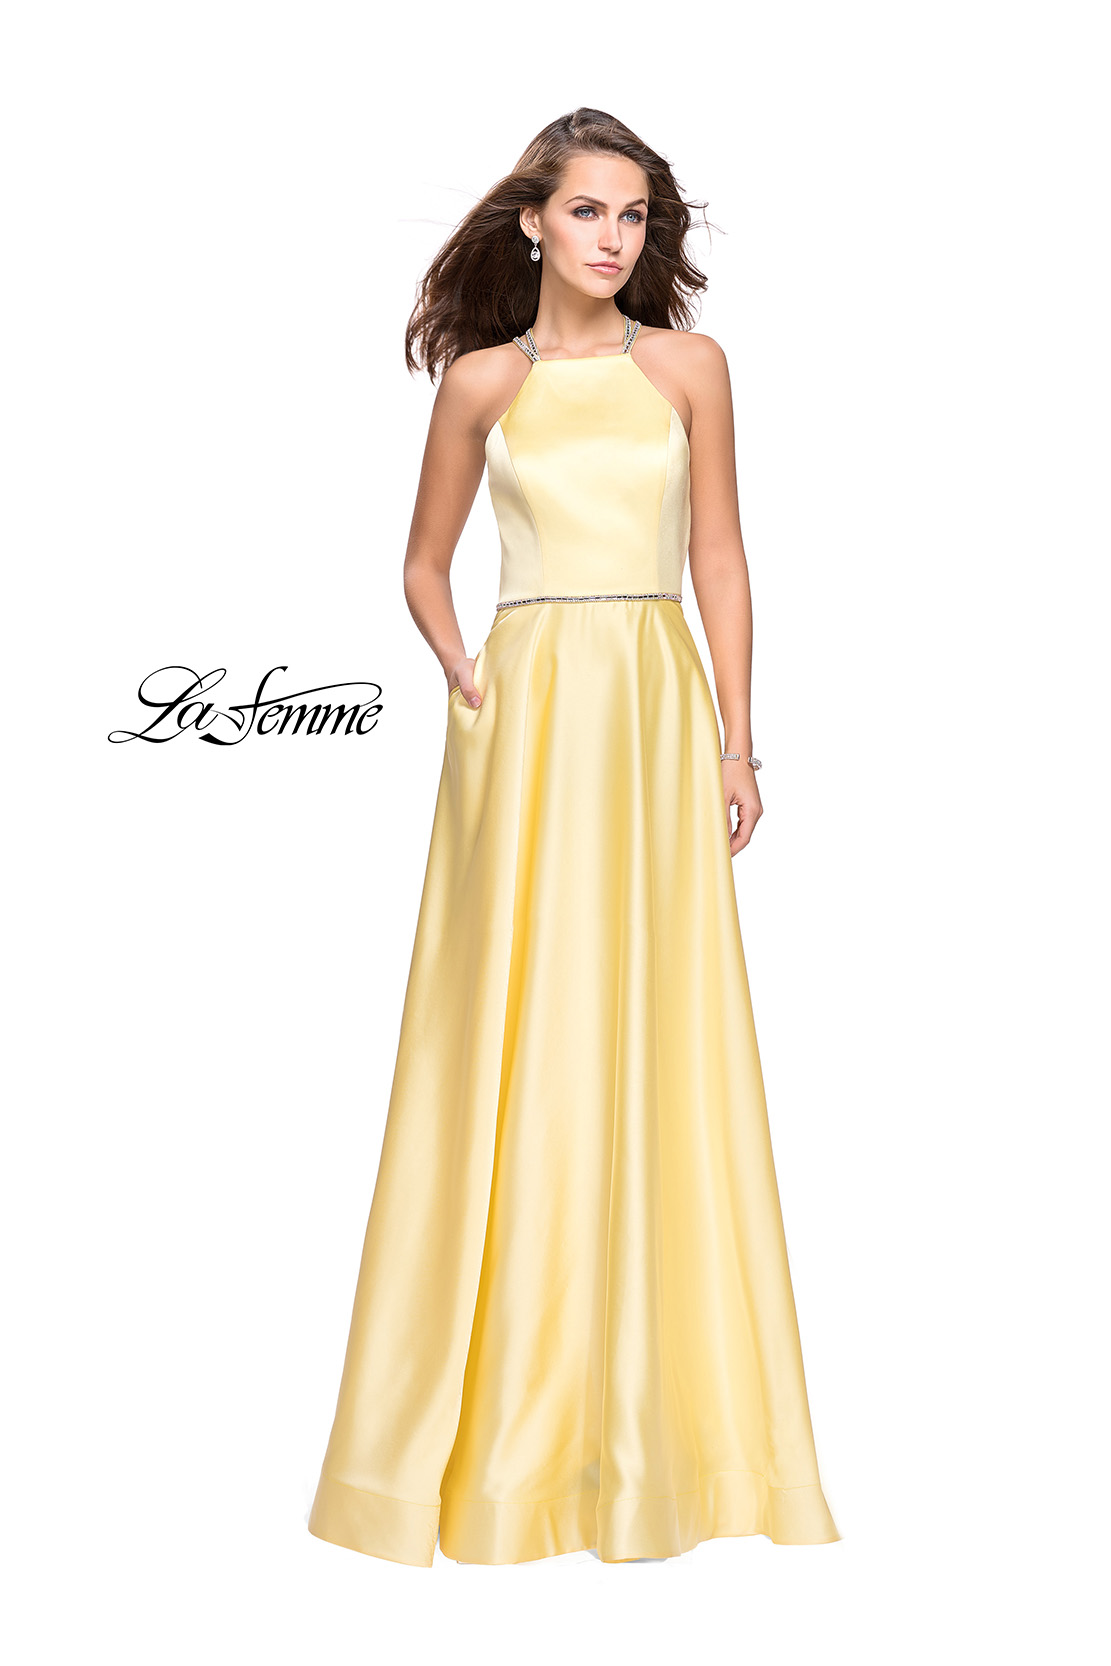 Satin Yellow Prom Dress with Belt by La Femme